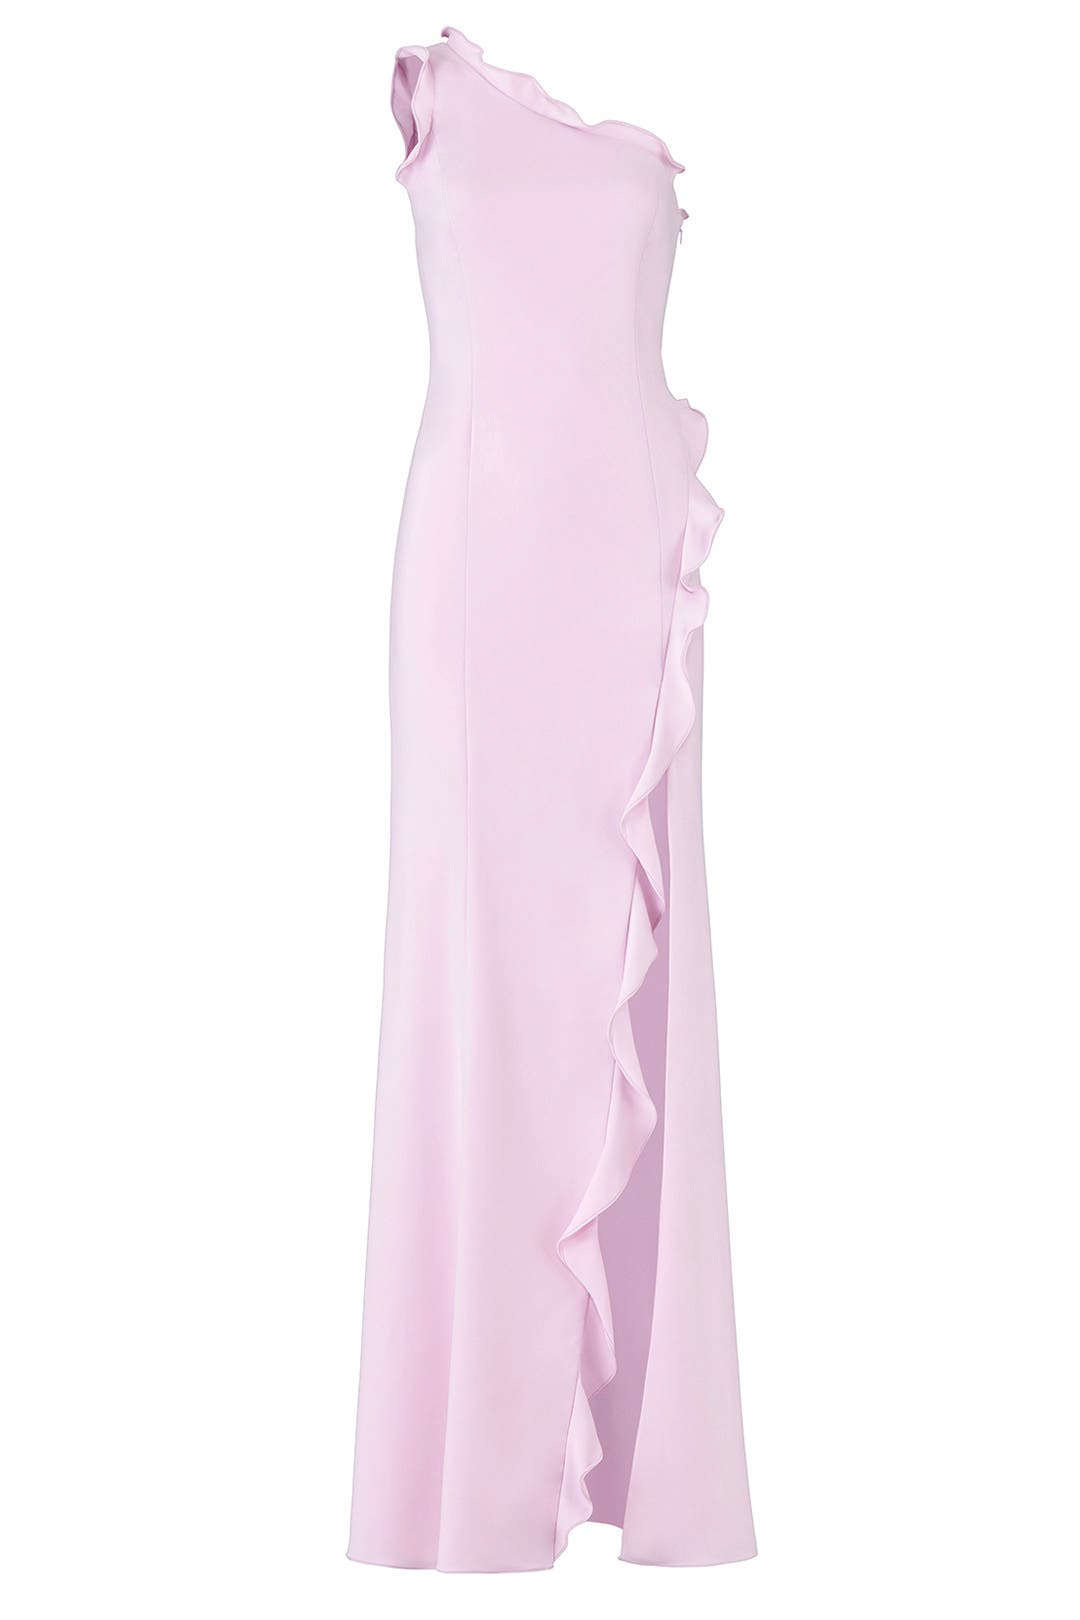 Lilac Alma Gown by Jay Godfrey for $50 - $70 | Rent the Runway